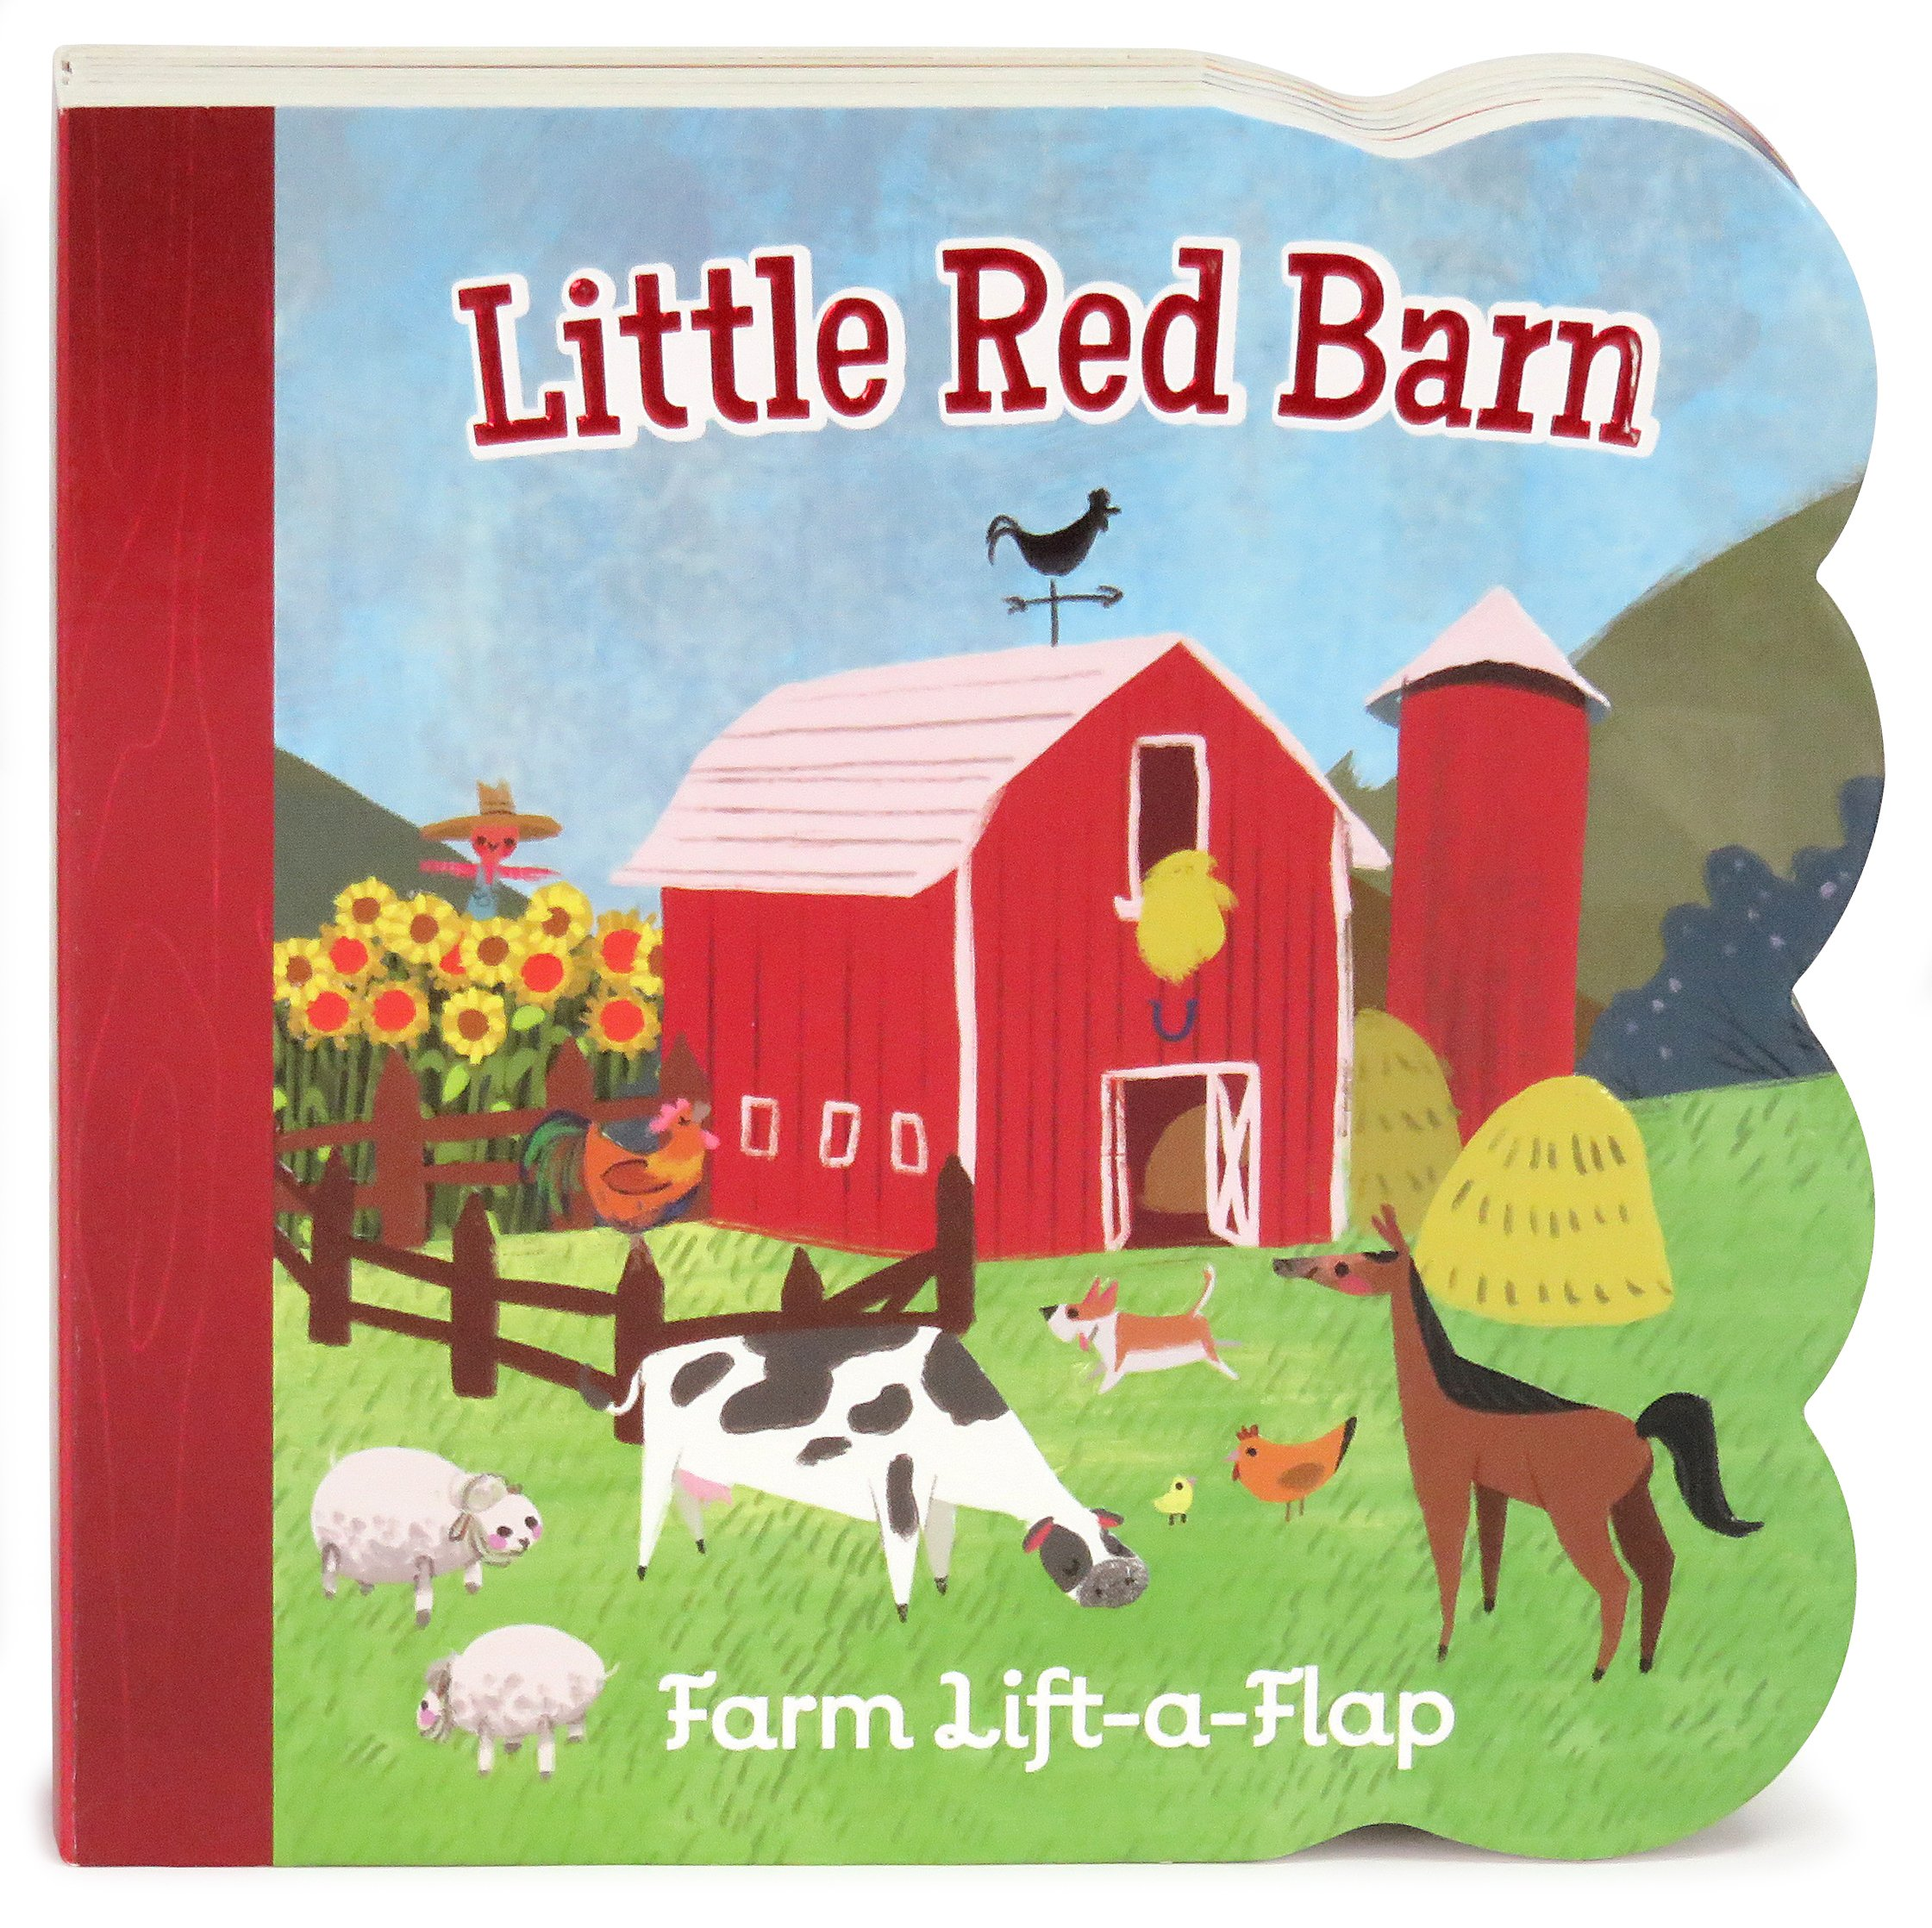 Little Red Barn Lift A Flap Board Book Babies Love Ginger Swift Cottage Door Press David Pavon 9781680520552 Amazon Books